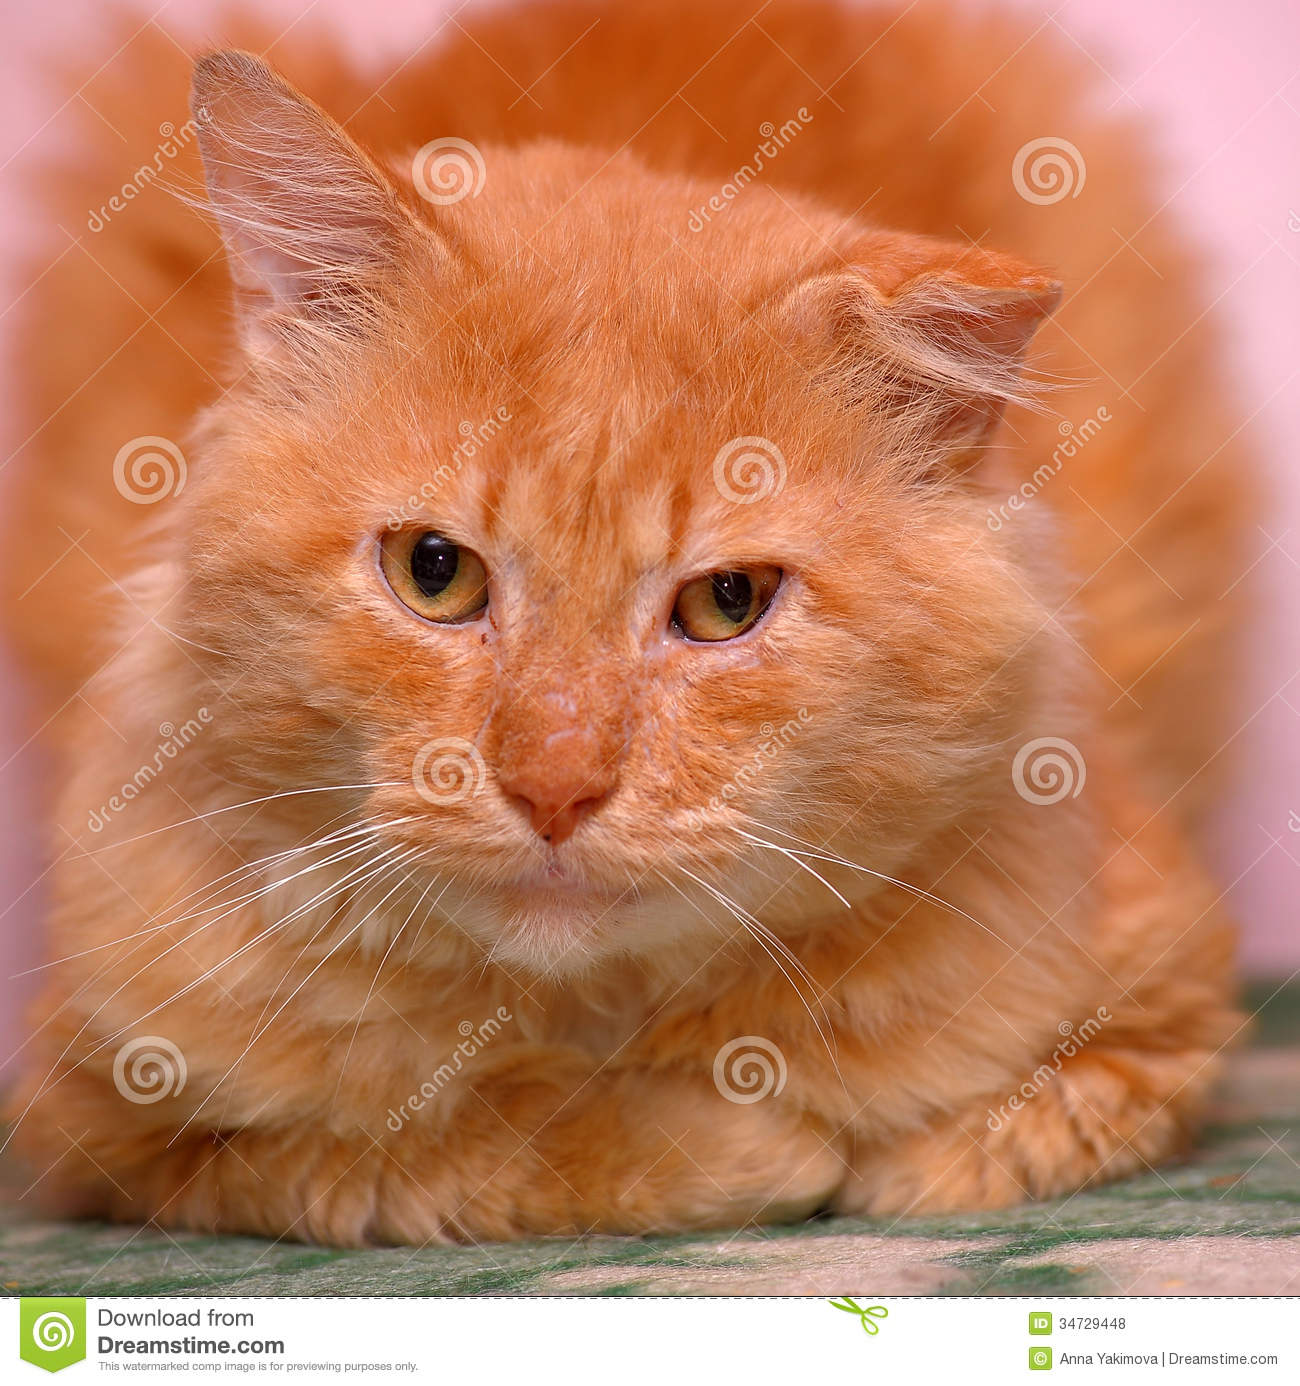 Cat With A Damaged Ear Royalty Free Stock Photos - Image: 34729448